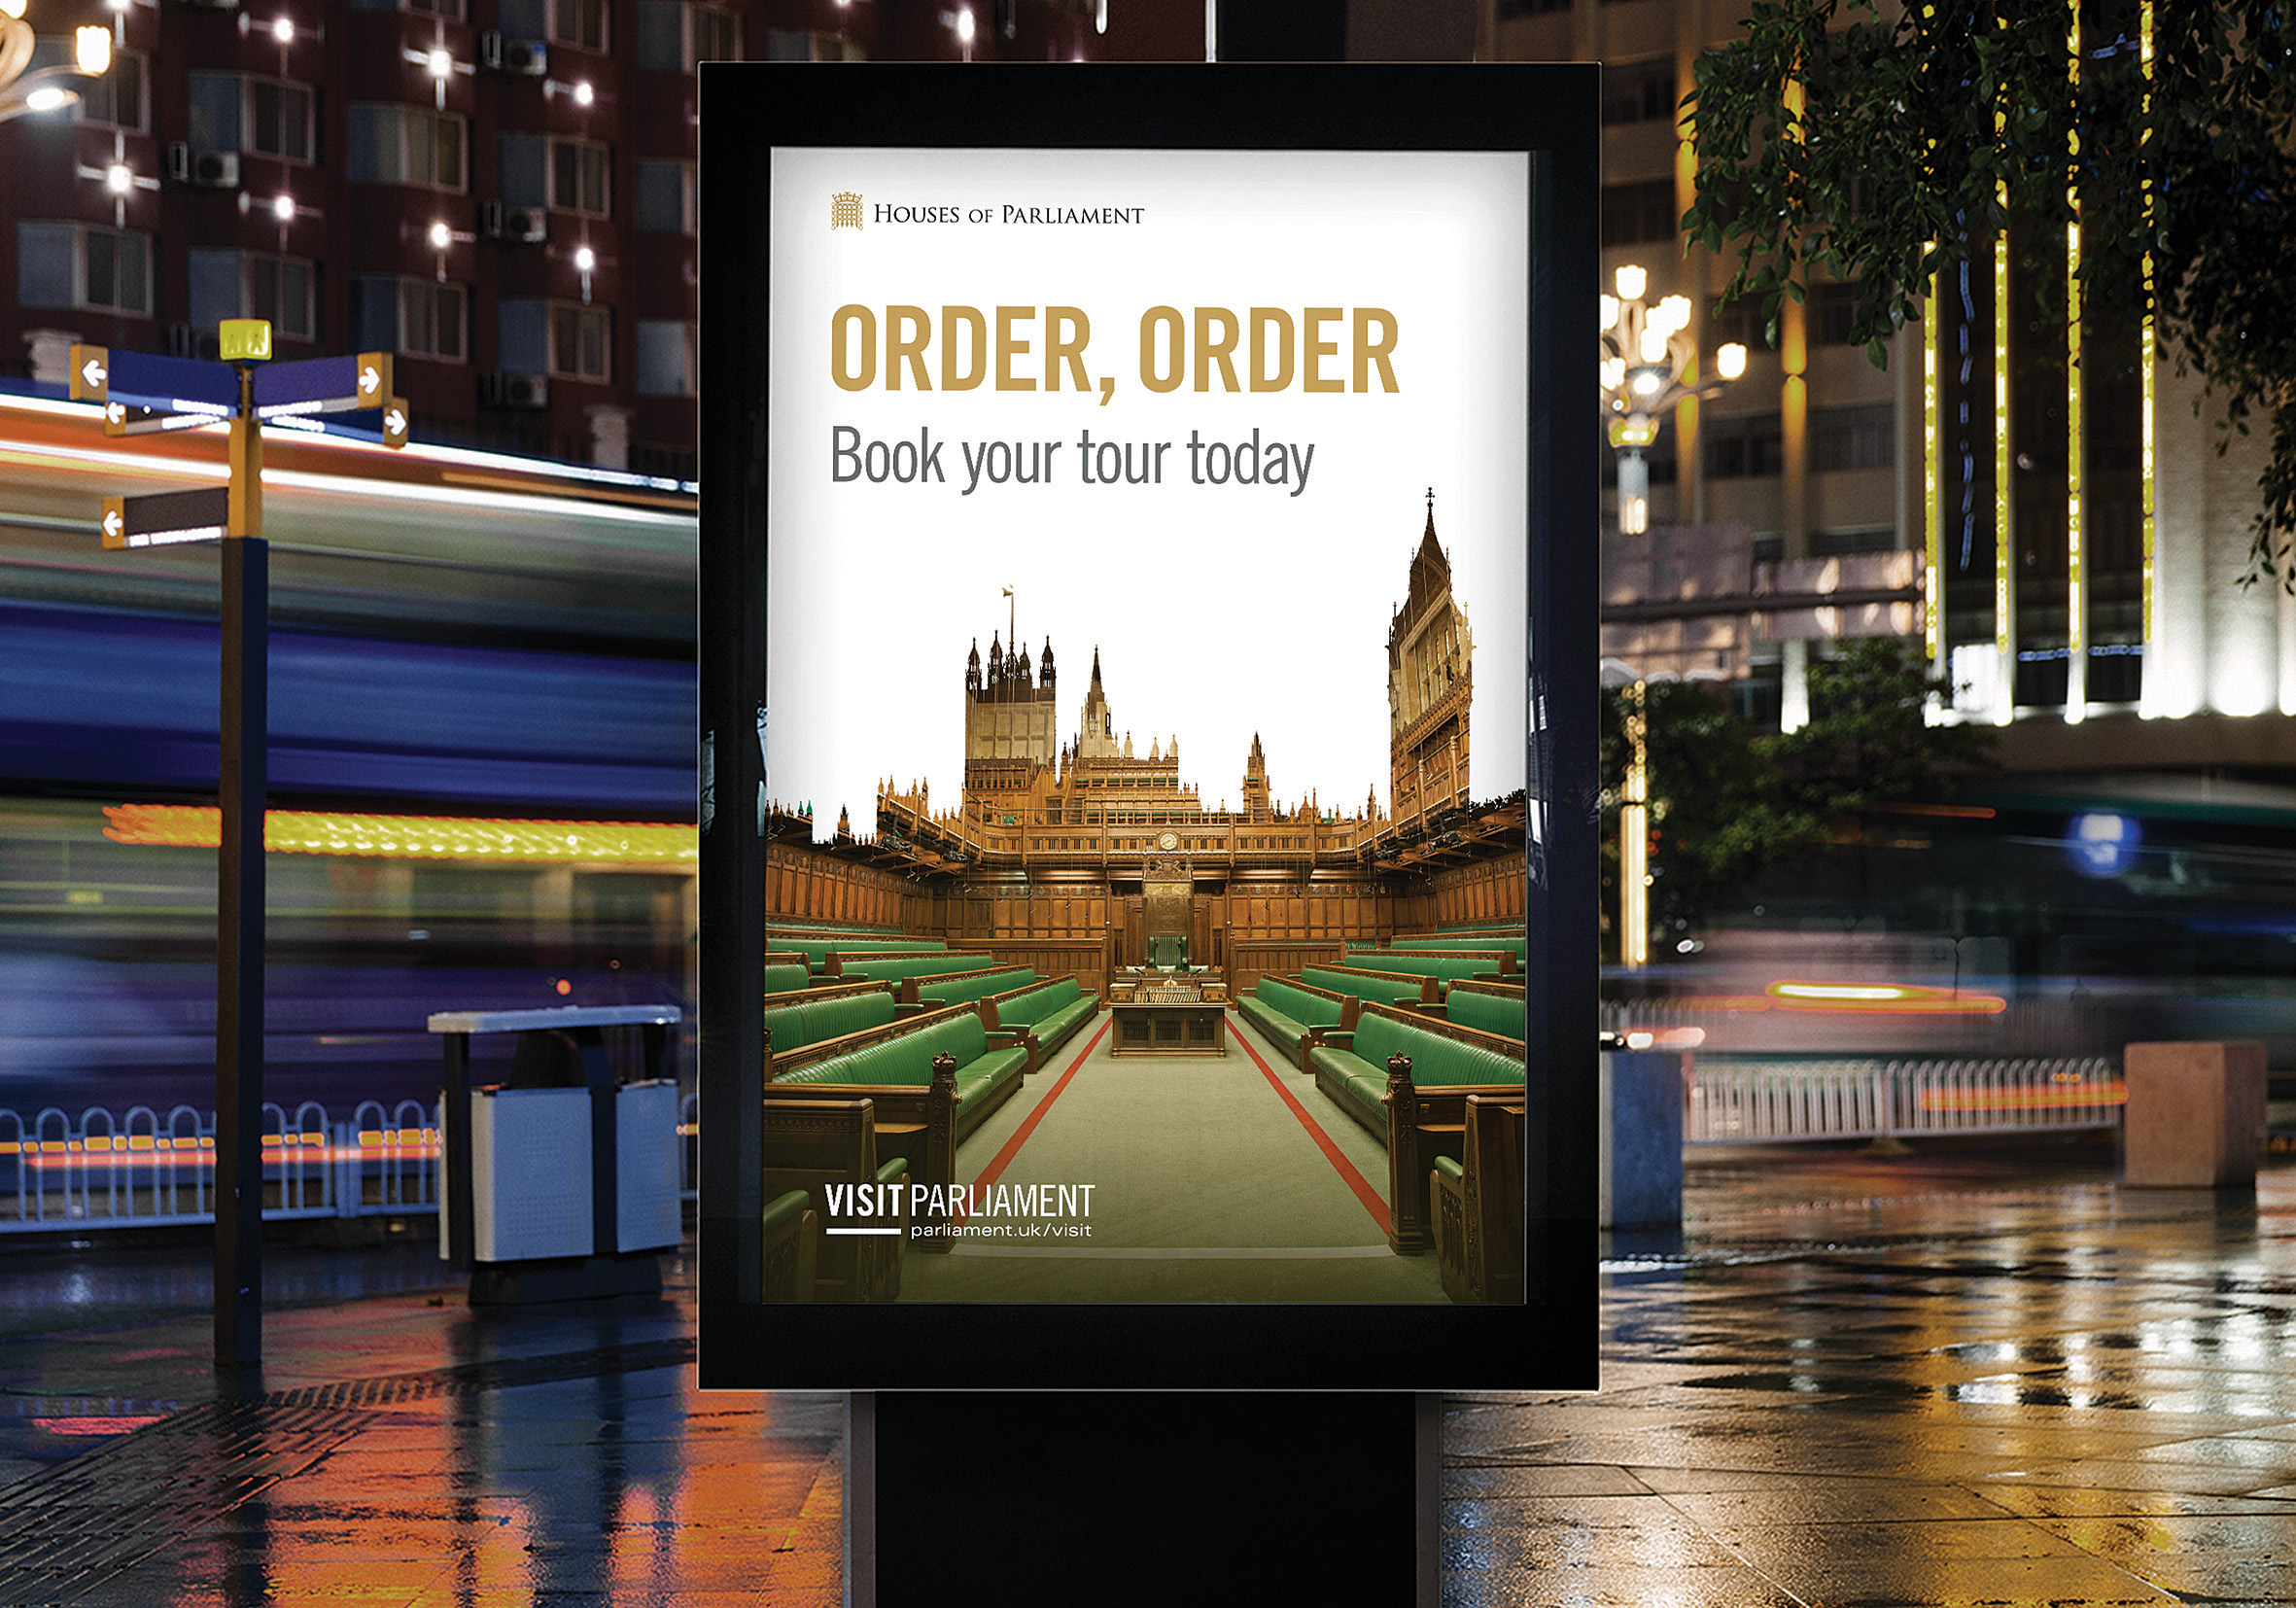 Extensive poster campaign across the London Tube and mainline rail network